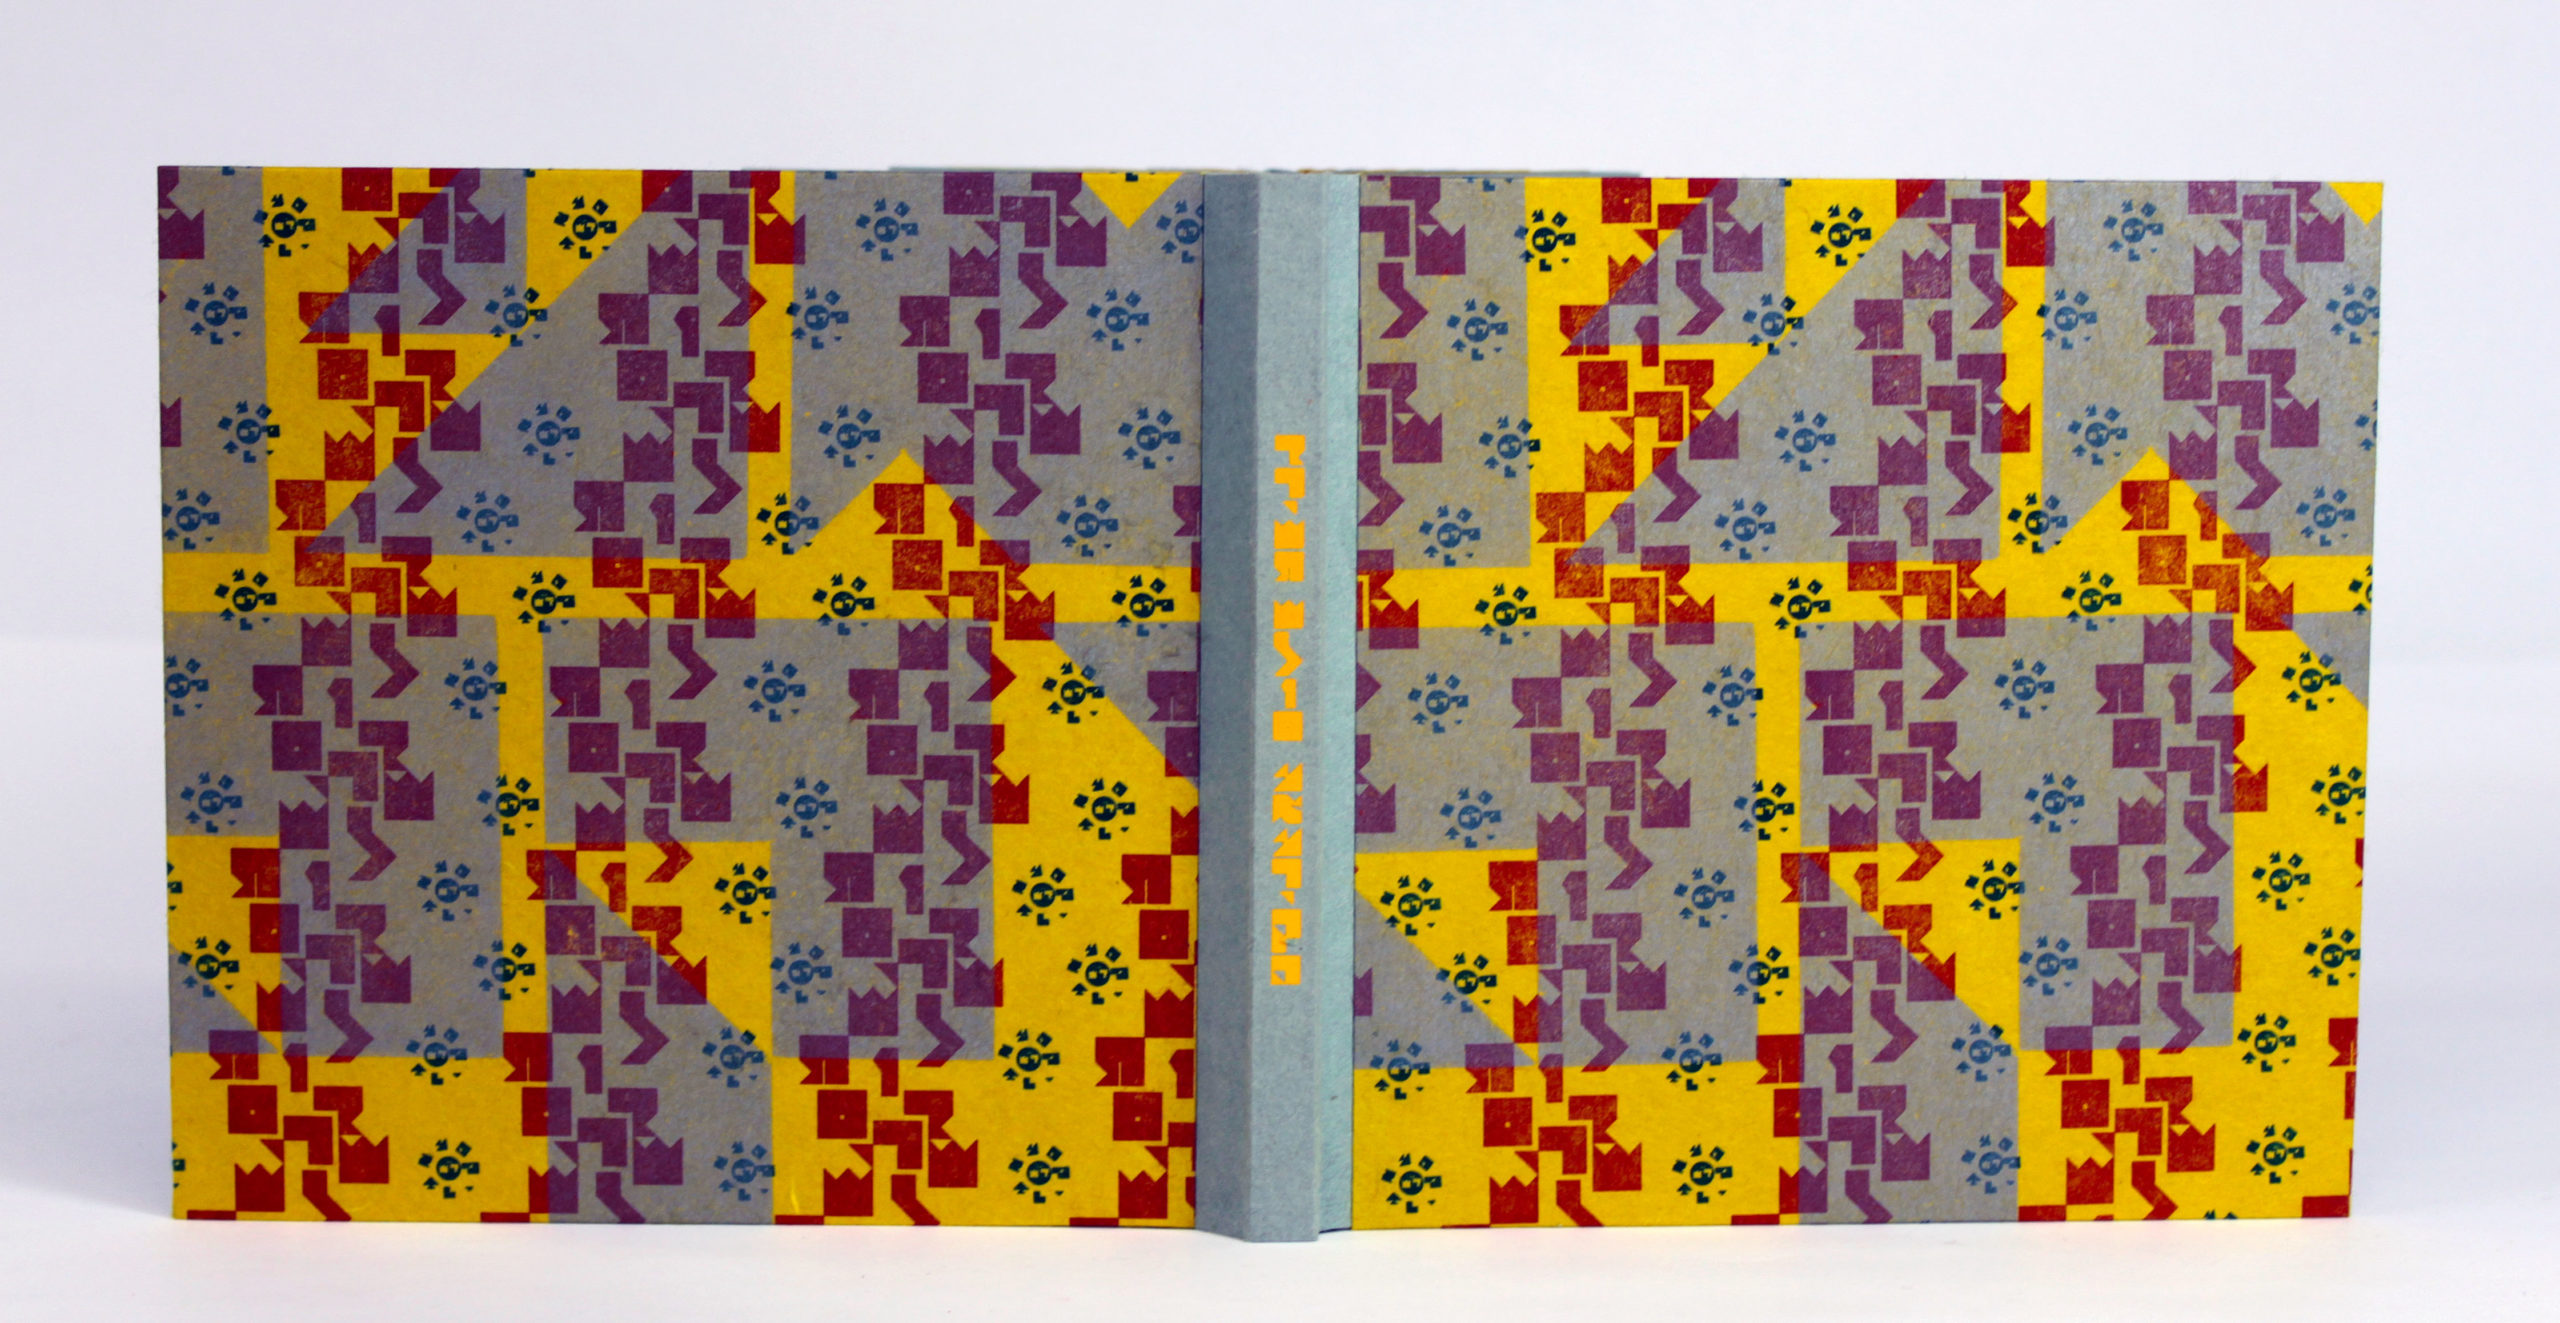 book sitting on its tail showing front and back covers with bright red and blue patterns of abstracted hebrew letters on yellow paper boards